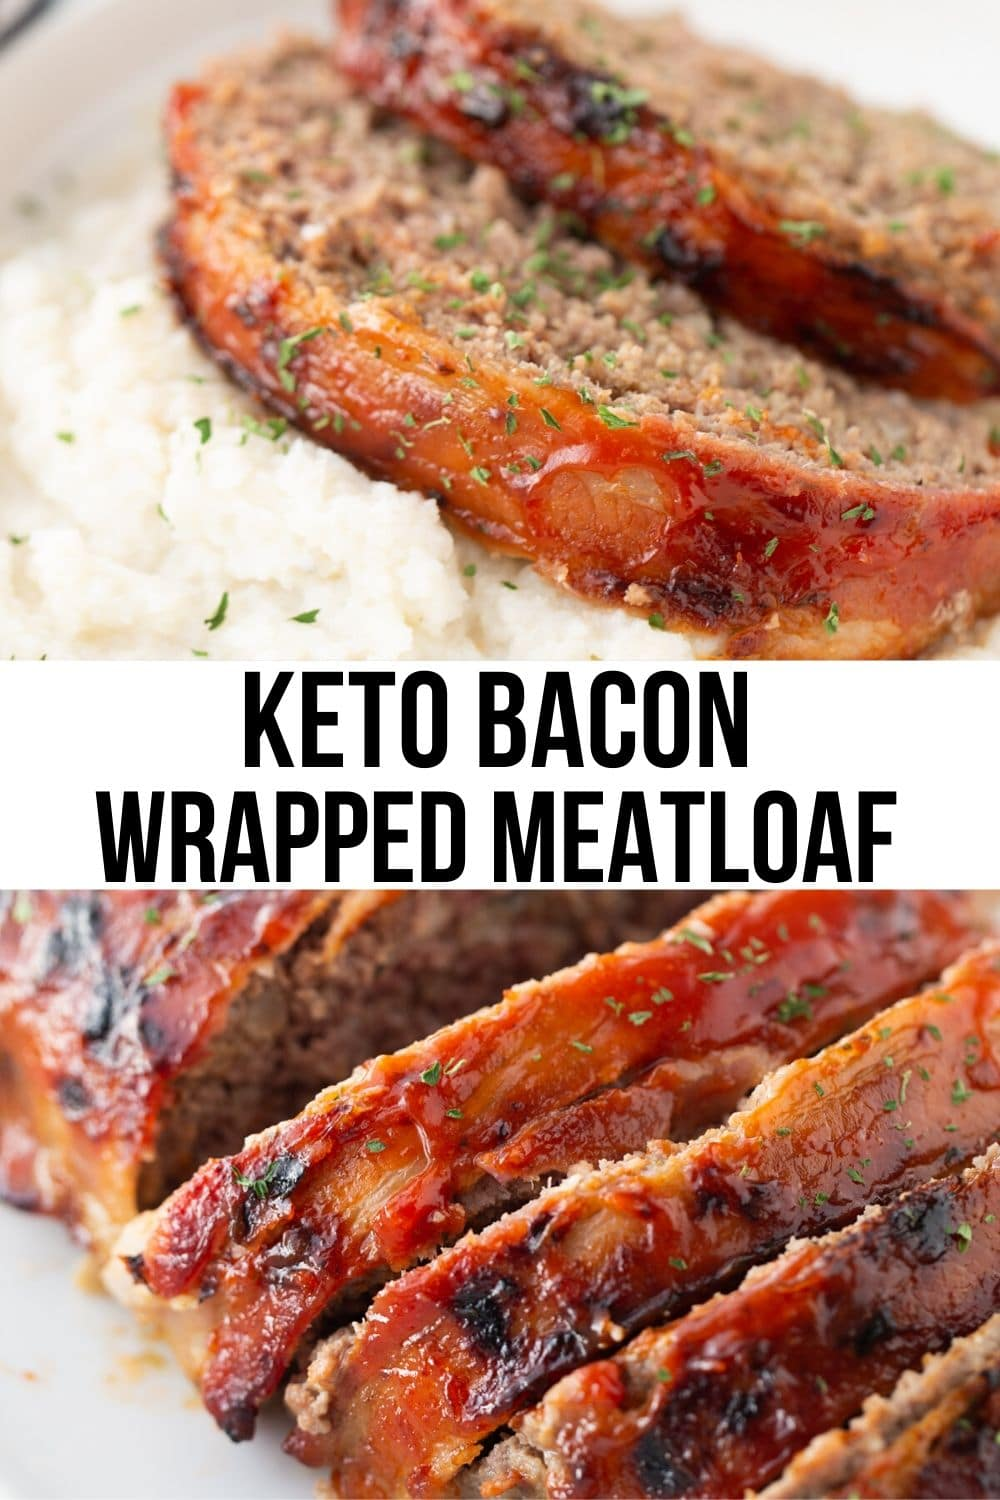 keto meatloaf slices served over mashed potatoes on white plate